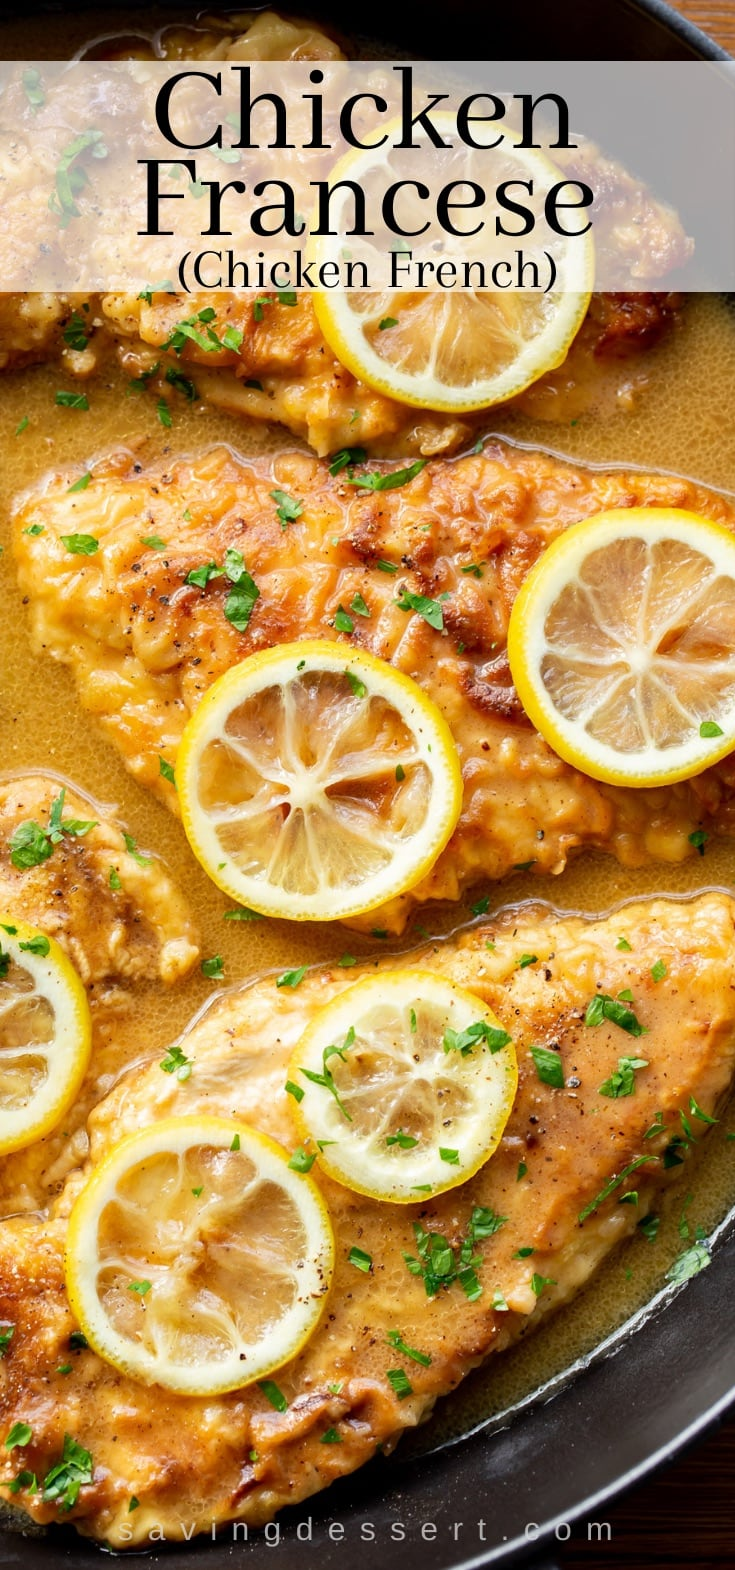 A skillet with lighted breaded chicken breasts with lemon